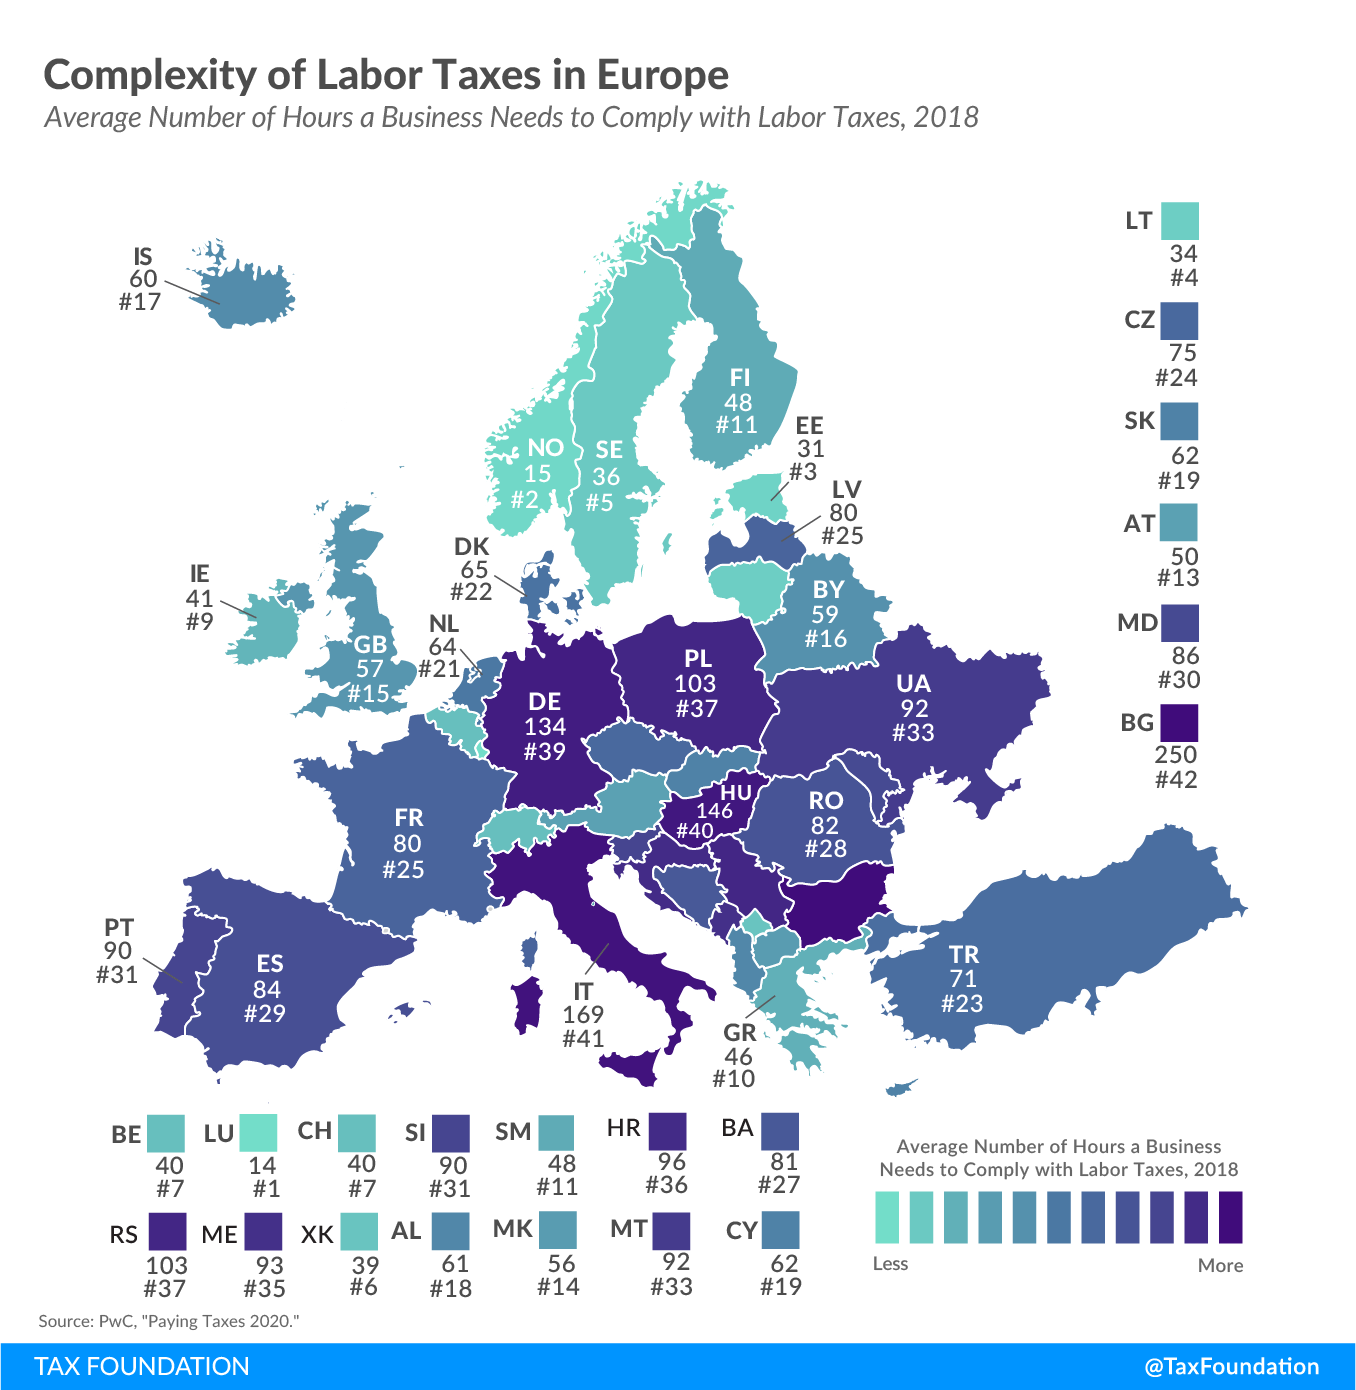 Complexity of labor taxes in Europe, labor tax administrative burden in Europe, 2020 tax compliance rules